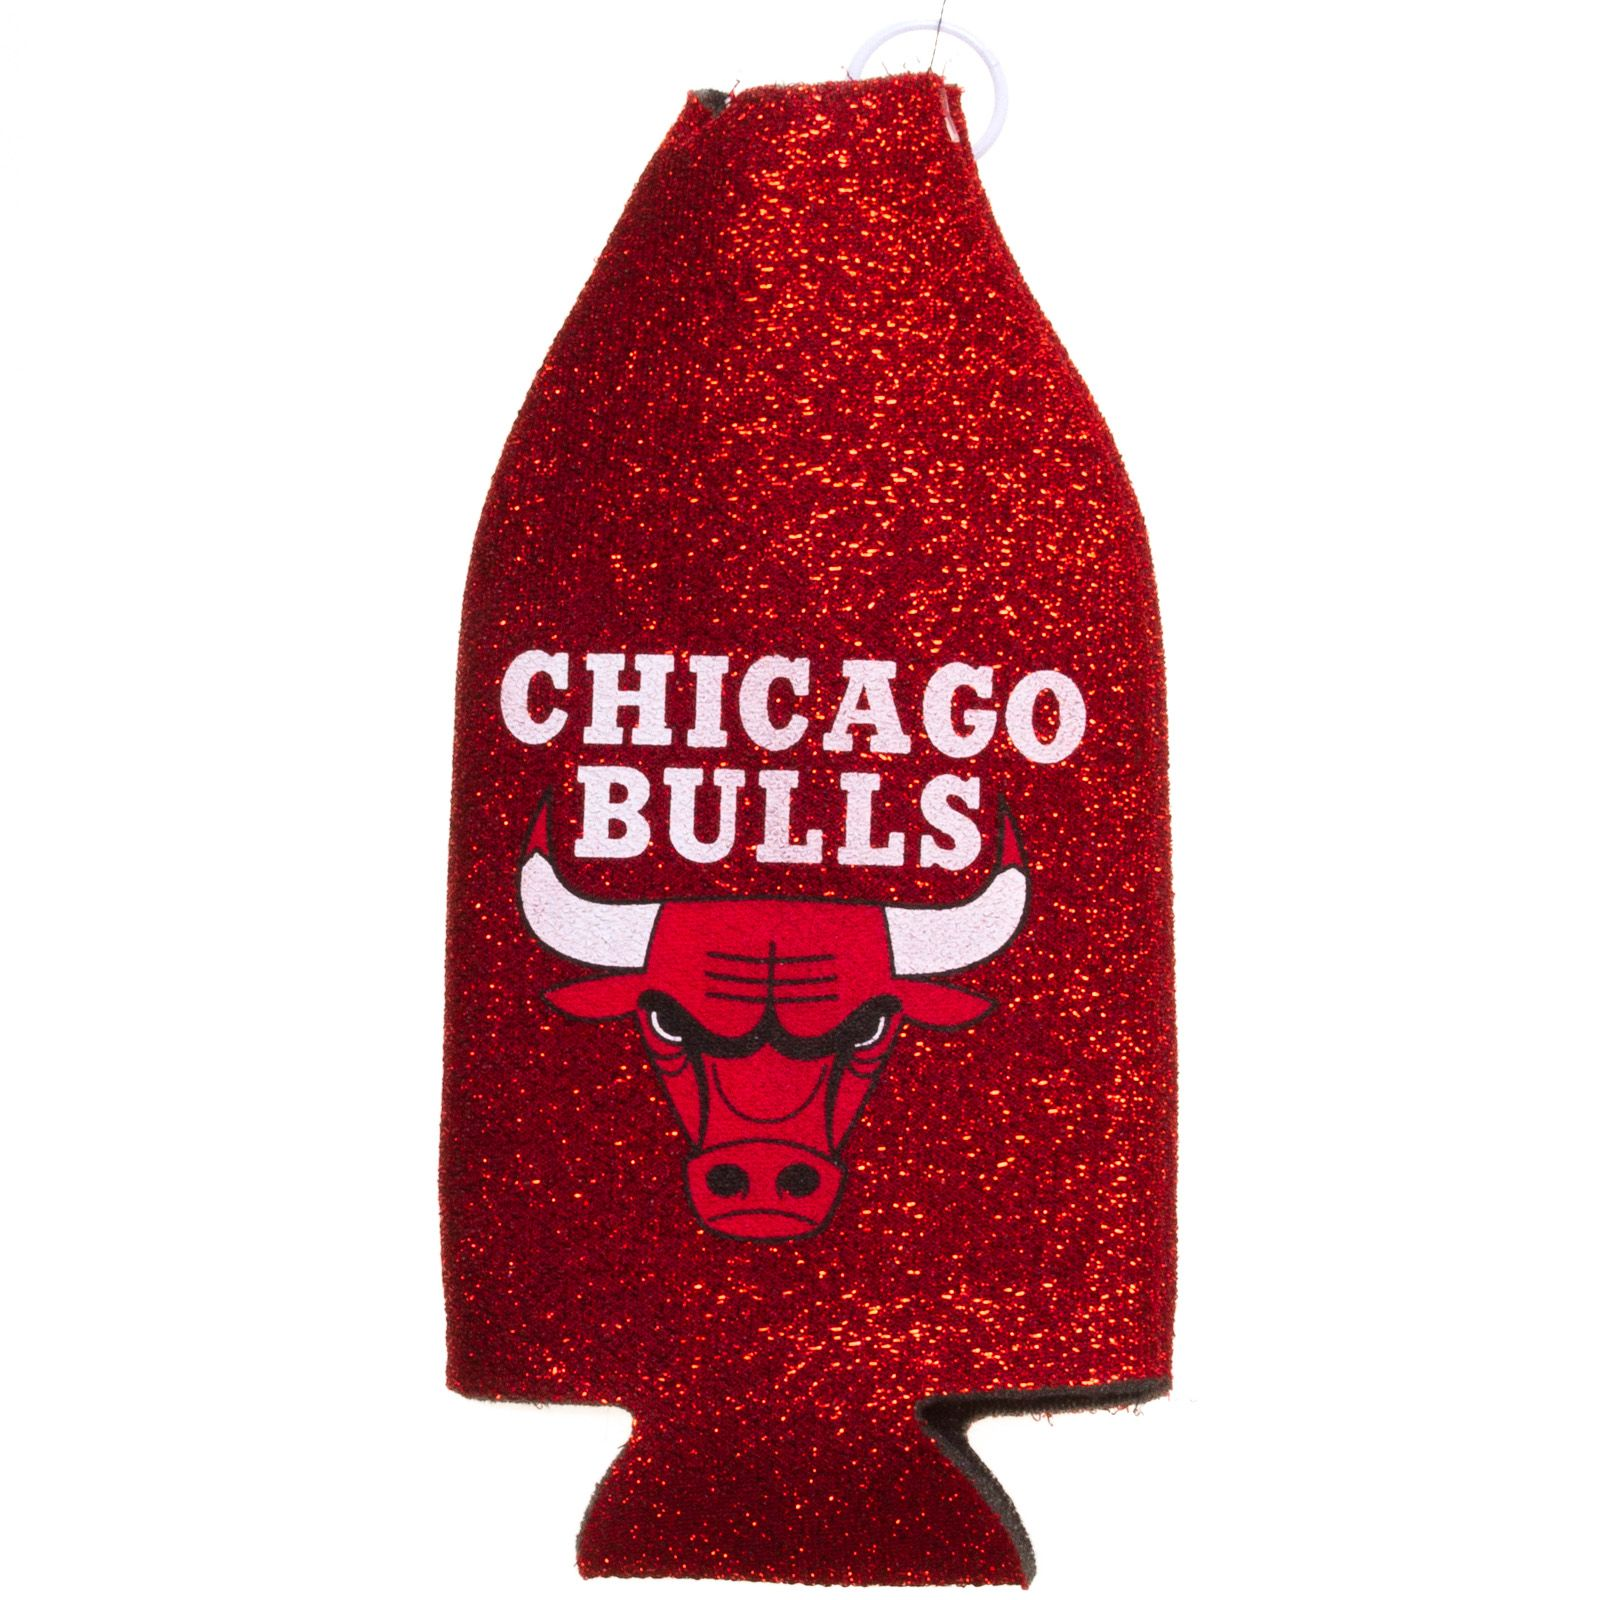 Chicago Bulls Red Glitter Bottle Coozie By Kolder Chicago Chicagobulls Bulls Glitter Bottle Bottle Coozie Chicago Bulls